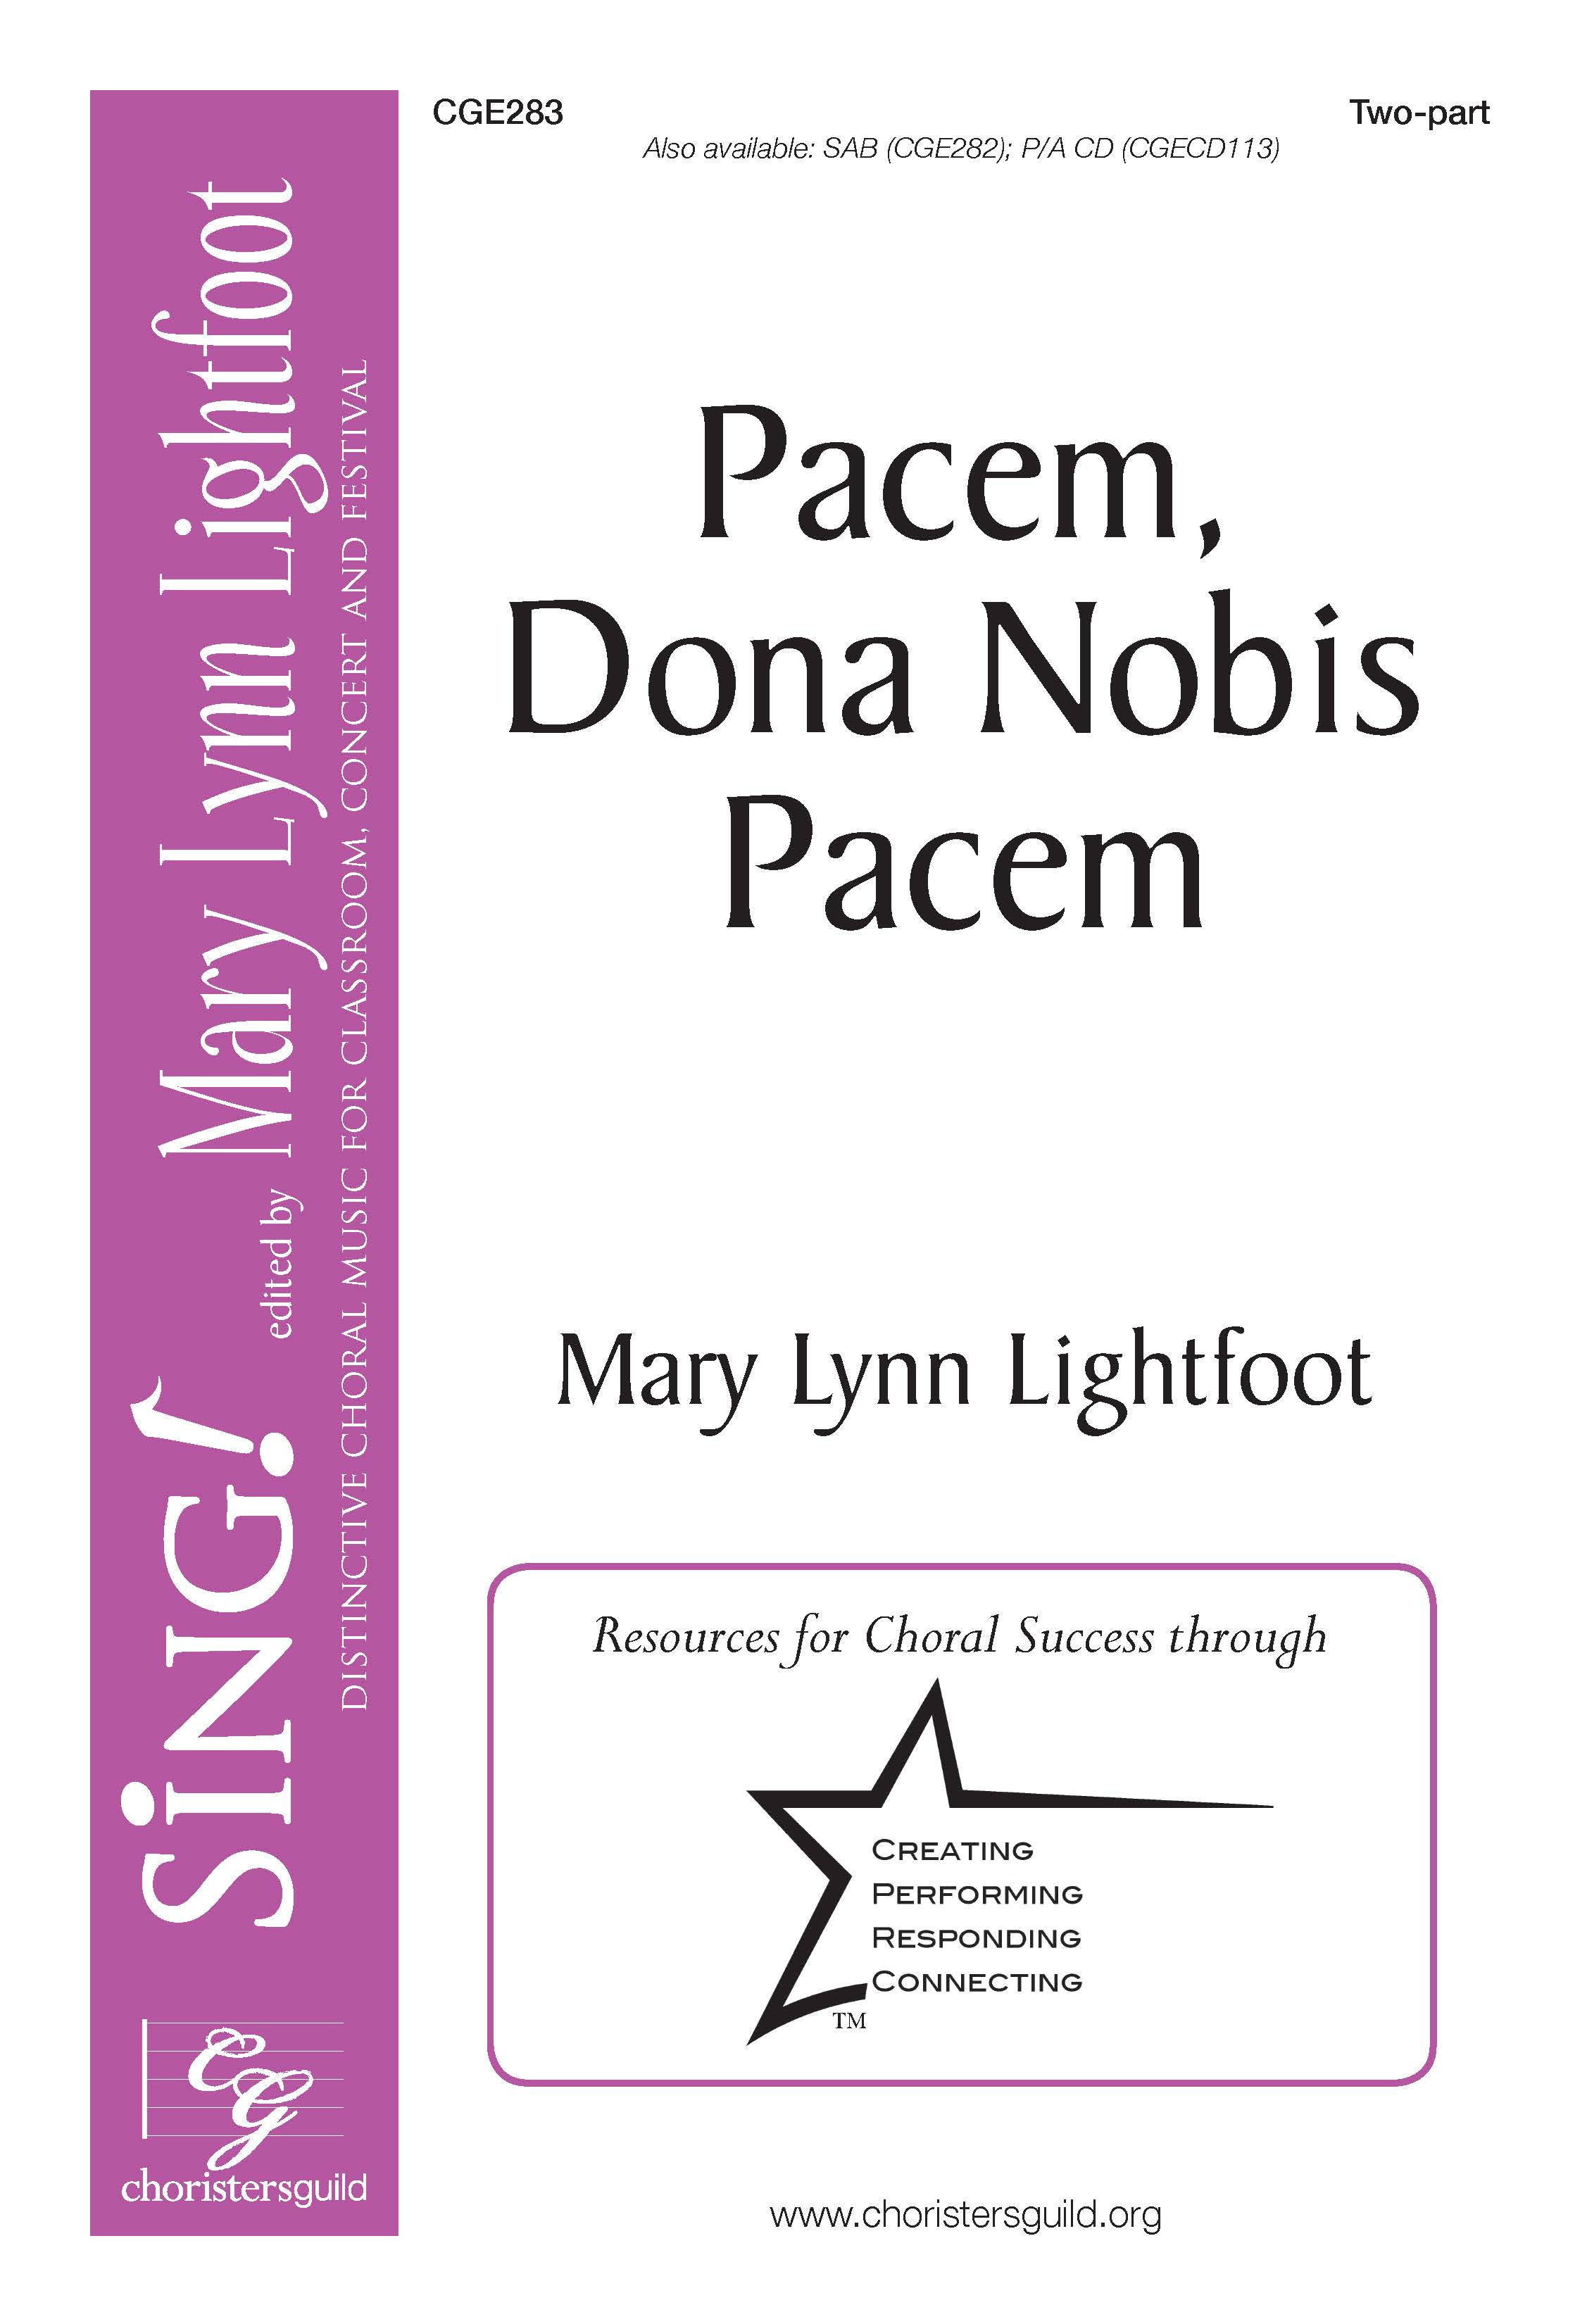 Pacem, Dona Nobis Pacem Two-part